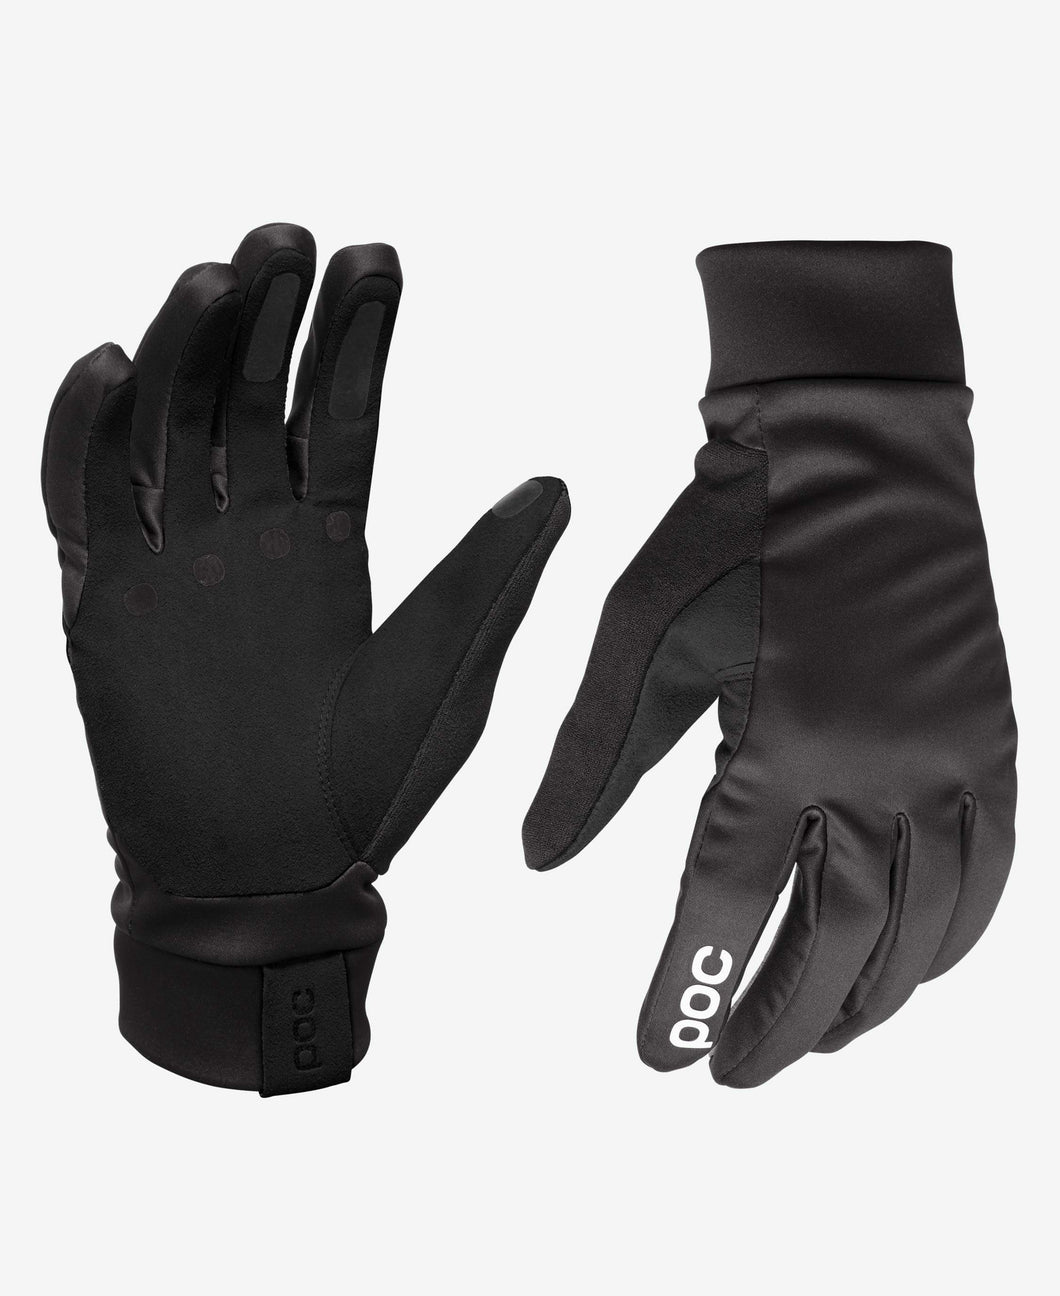 バイクグローブ Essential Softshell Glove - Uranium Black [ユニセックス] 30370-1002 - STYLE BIKE ONLINE SHOP